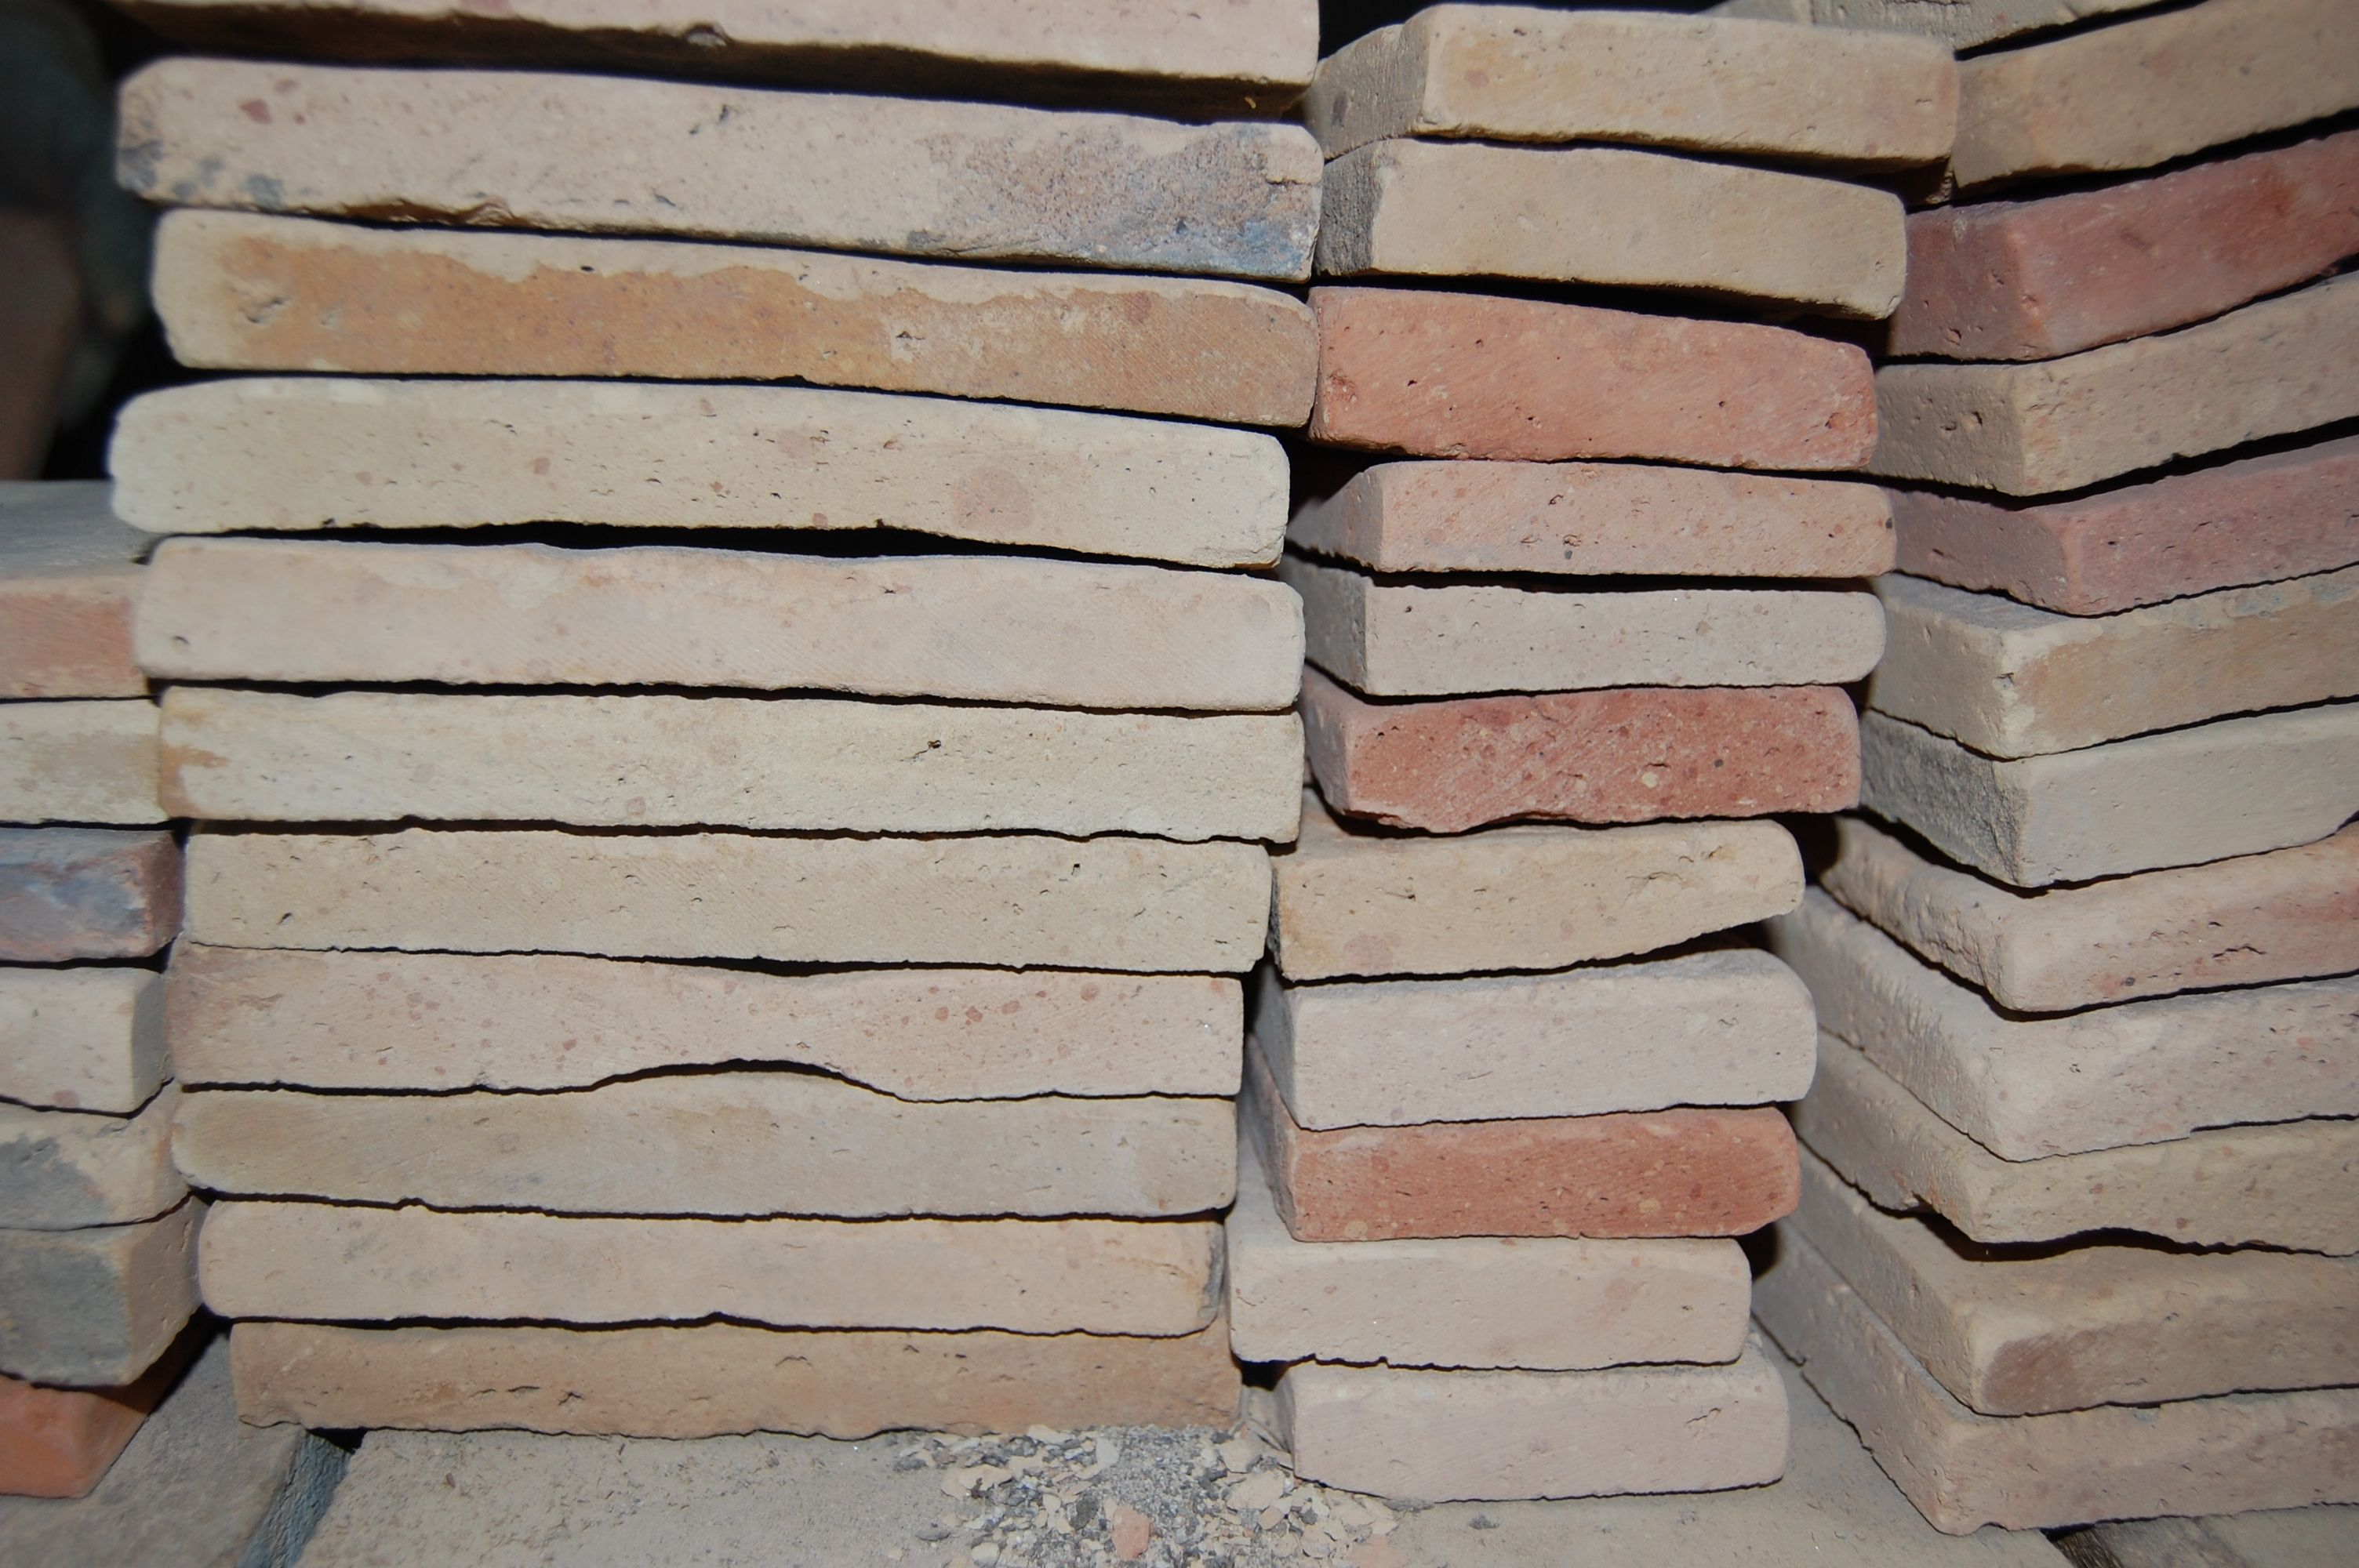 Our terracotta tiles are 100 200 years old terracotta floor our terracotta tiles are 100 200 years old terracotta floor tiles dailygadgetfo Choice Image